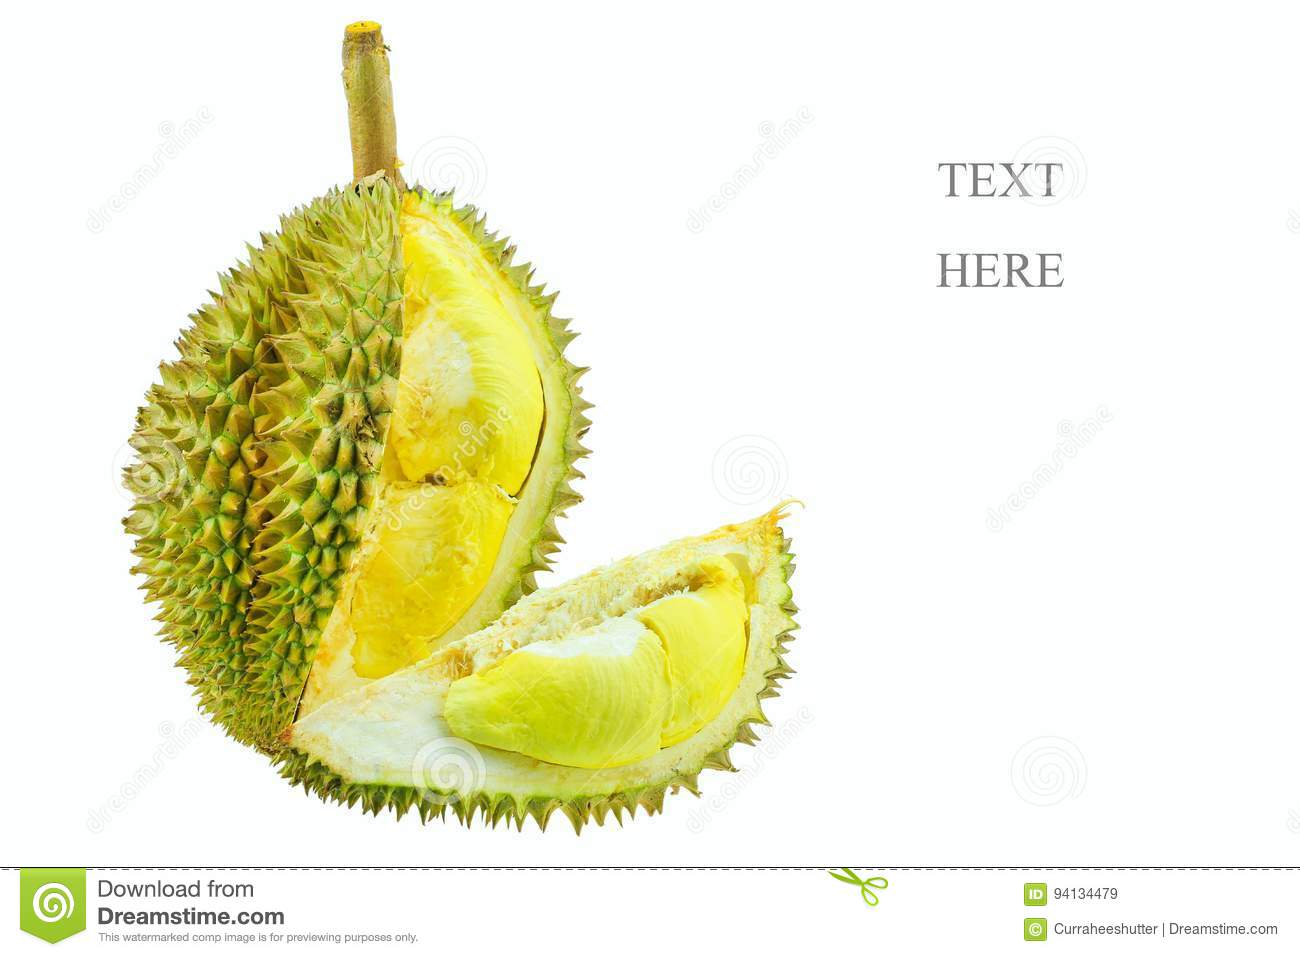 Durian From Orchard For Export To The Market Or Supermarket King Of Fruit Is Durian And So Smell Some People Favorite Durian Stock Image Image Of Fruit Calorie 94134479